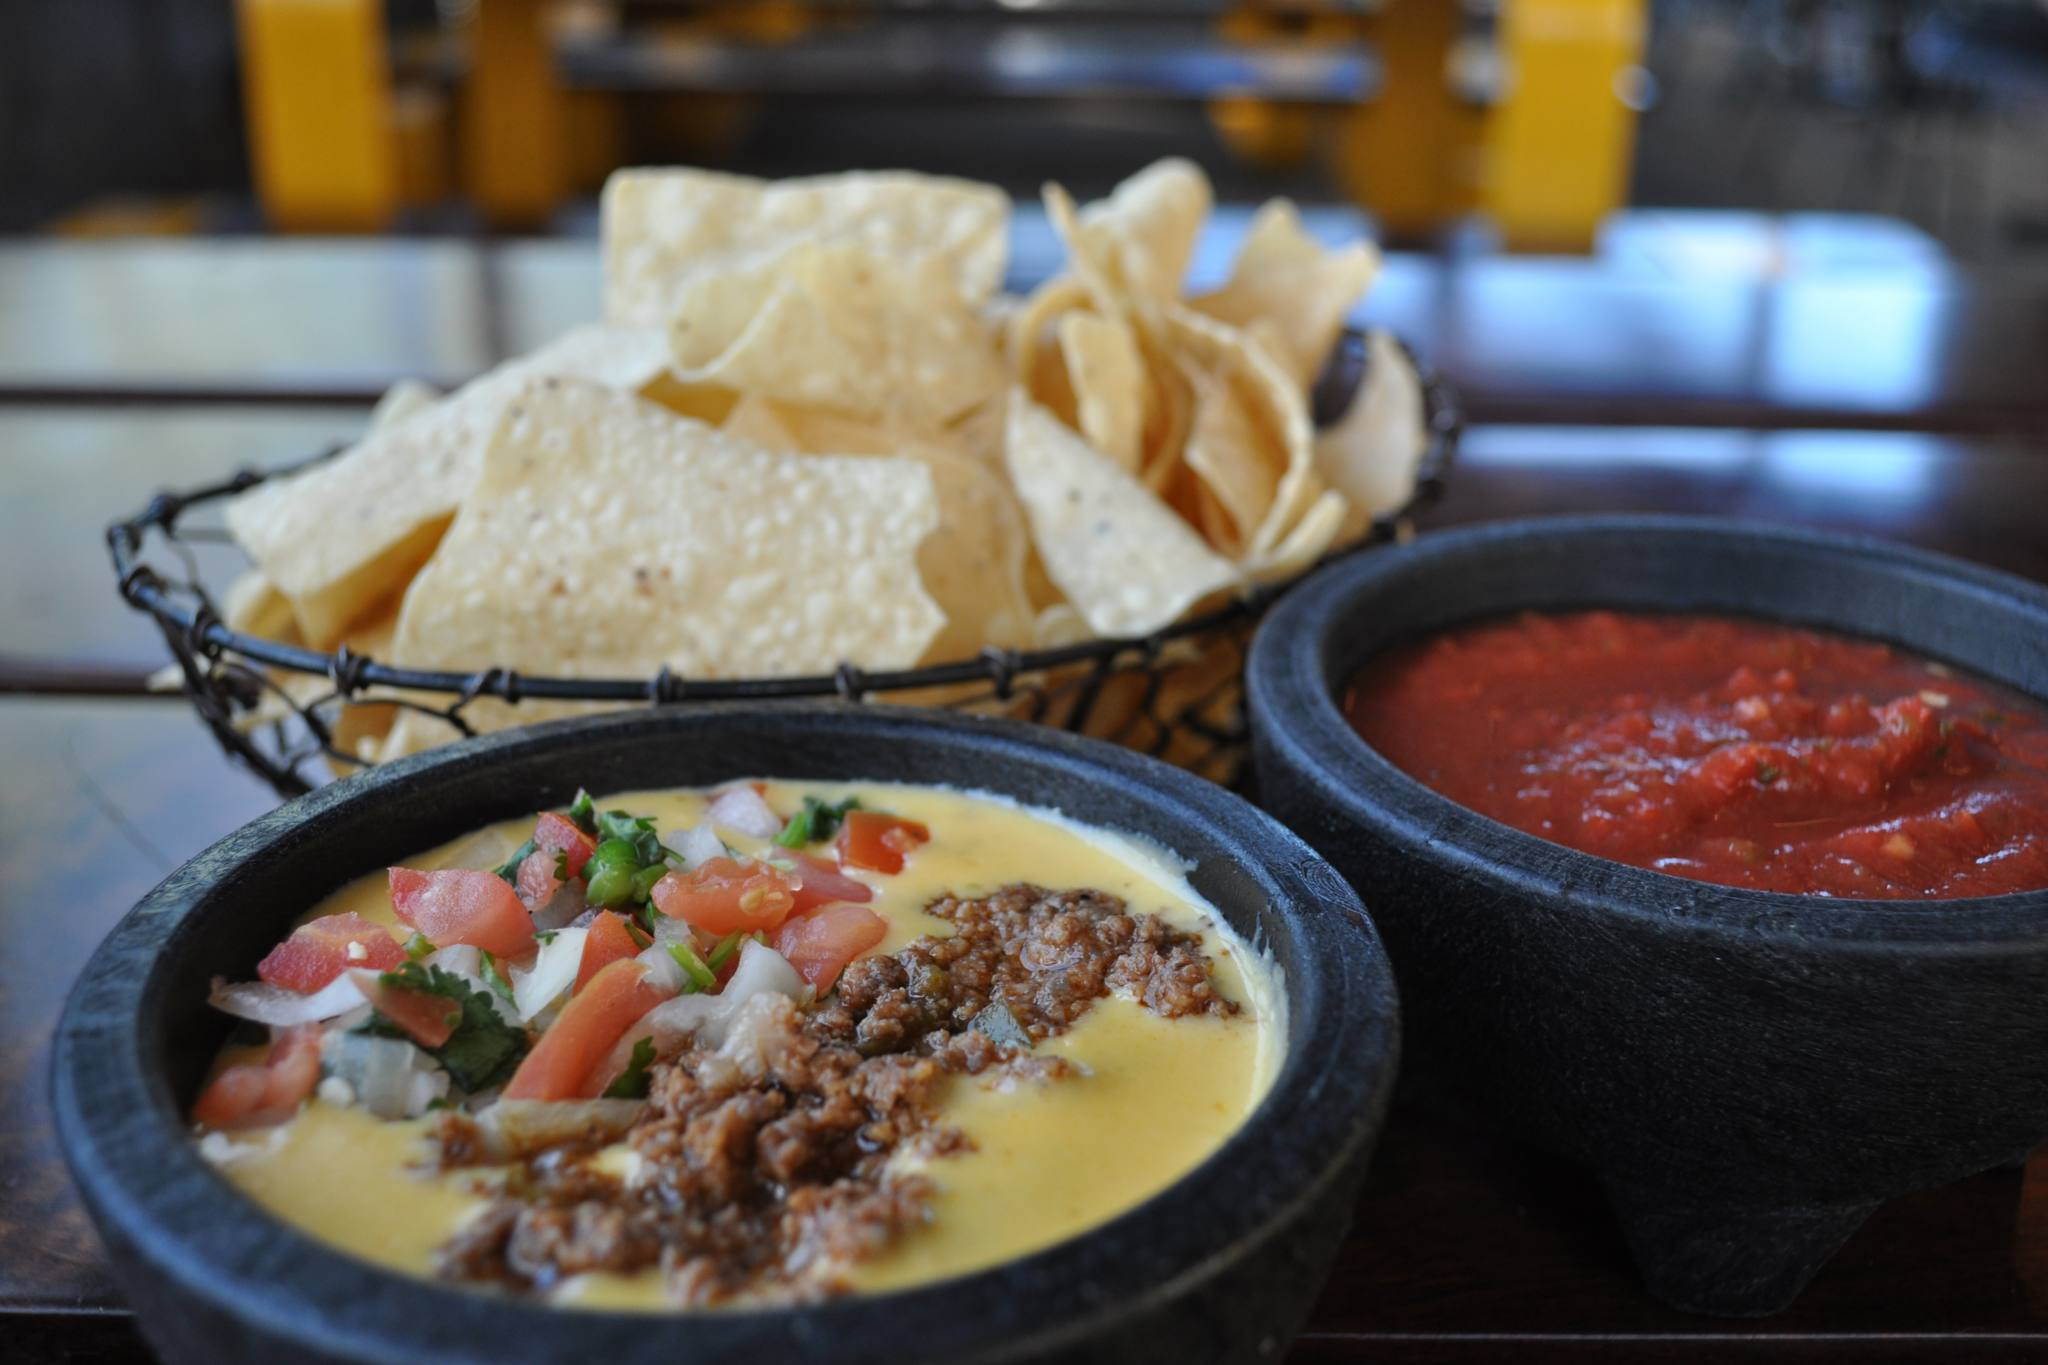 Maudie's Cafe queso